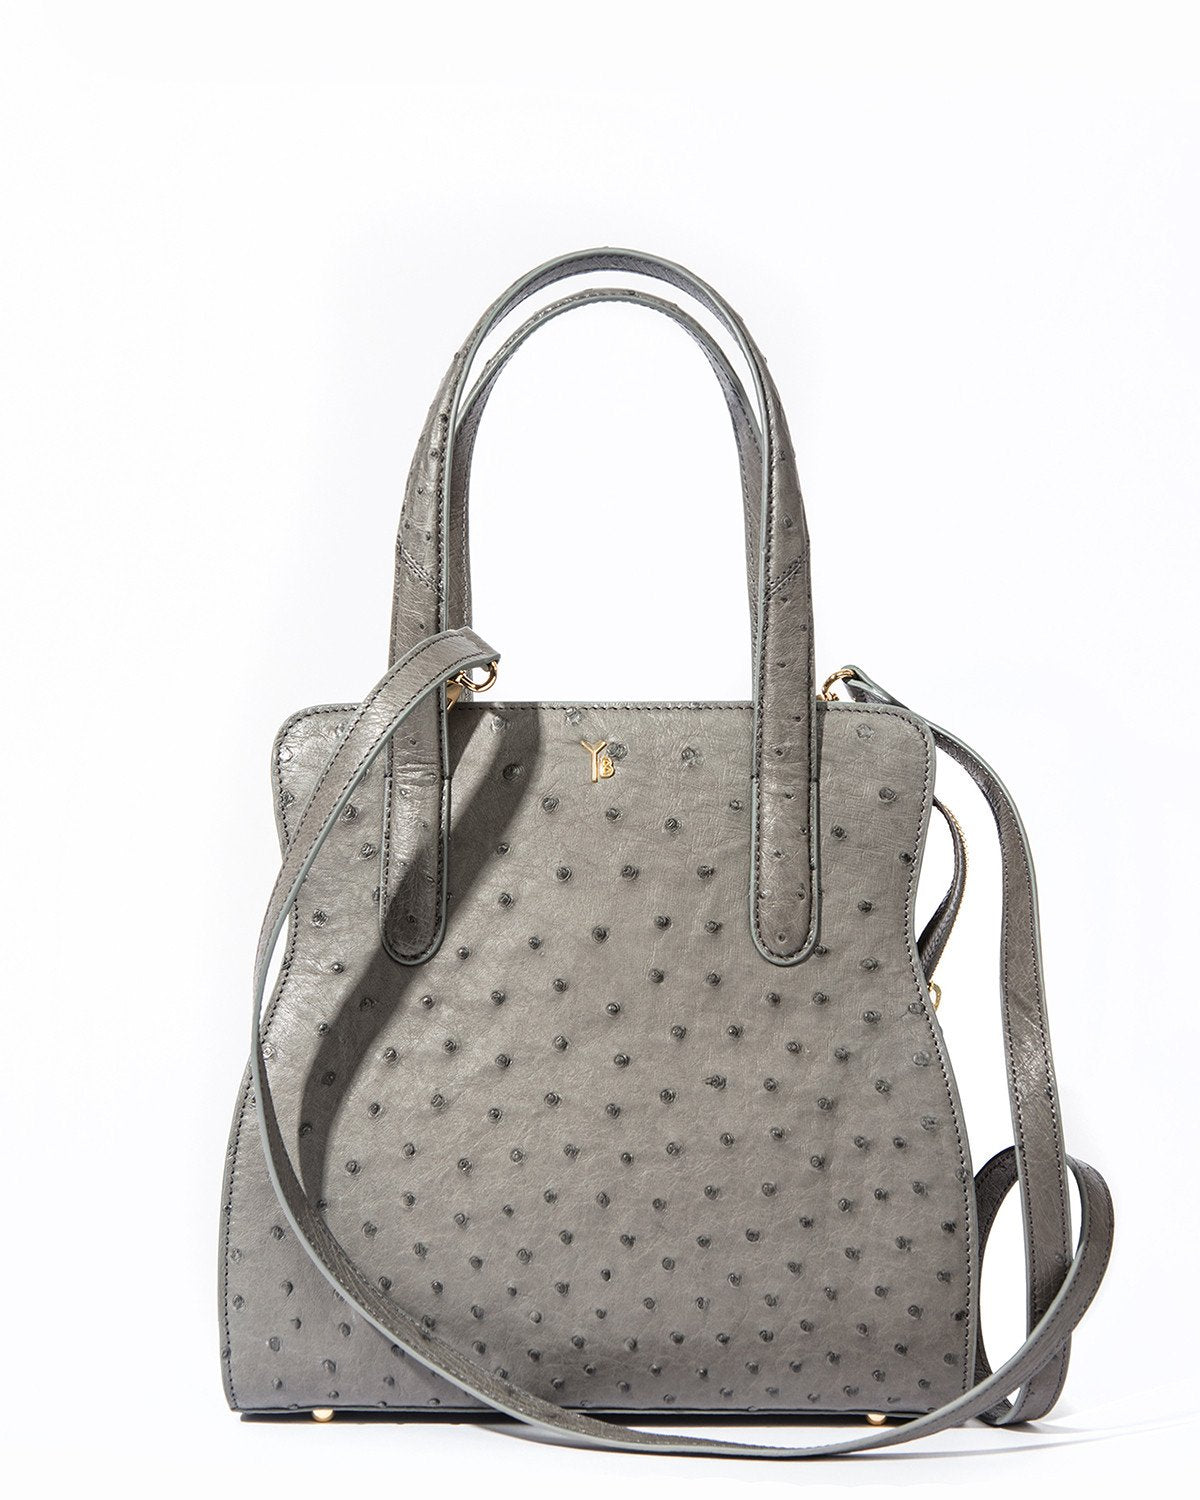 YB ADAM S Tote Grey Ostrich Attachable Long Shoulder Strap